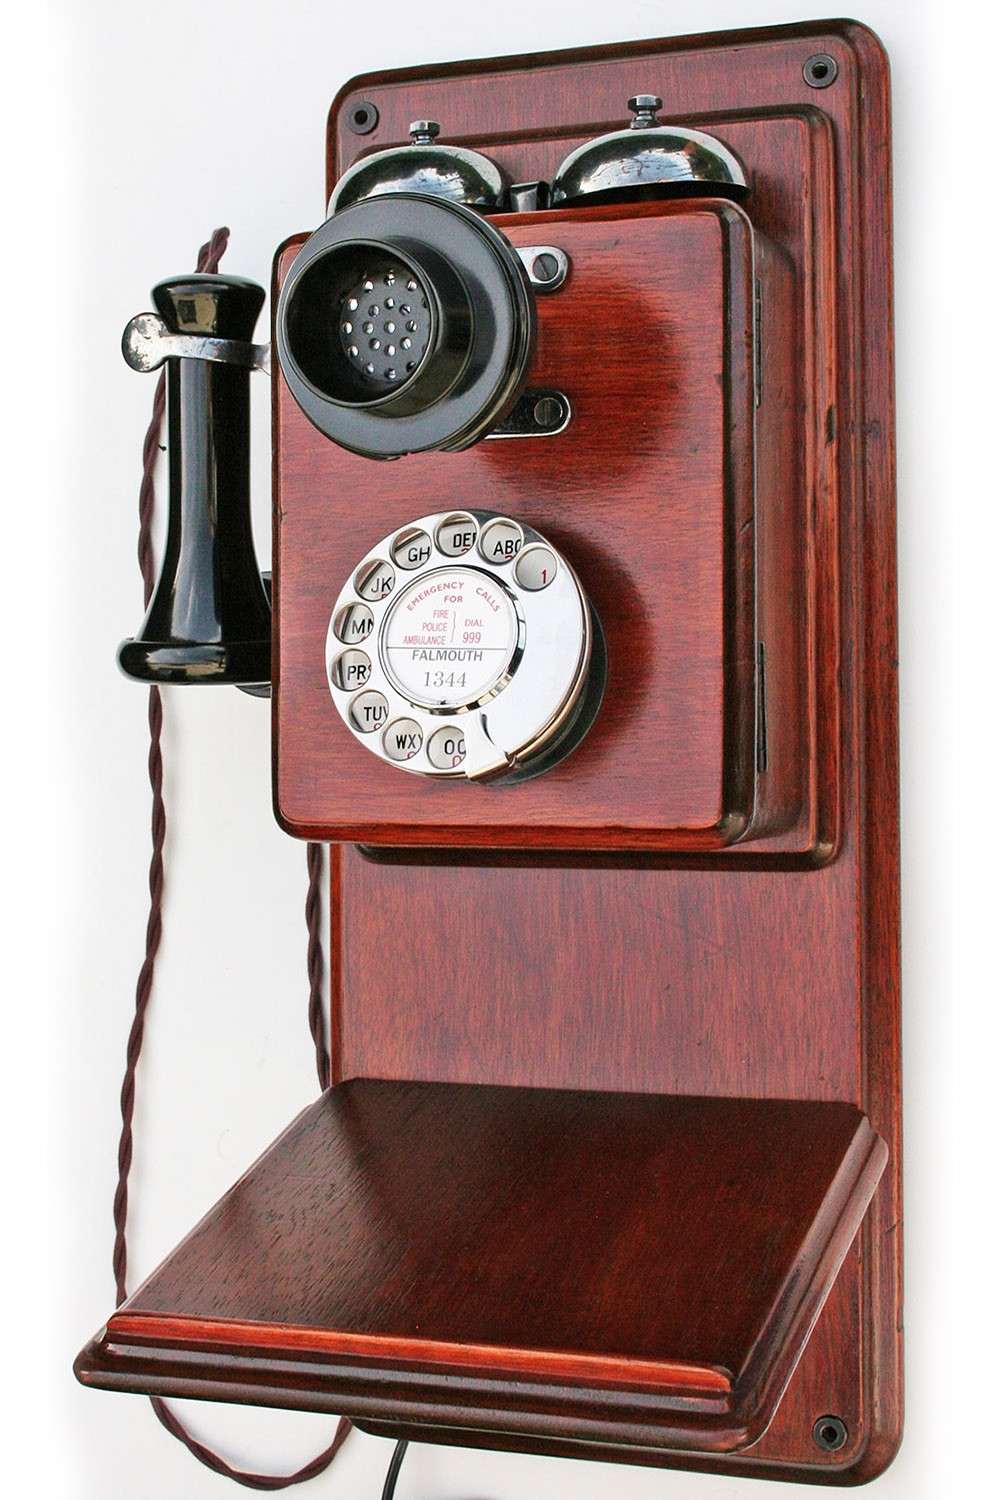 Best Of Genuine Gpo 121l Wooden Wall Telephone 1920s Old Wooden Phone Of Adorable 43 Images Old Wooden Phone